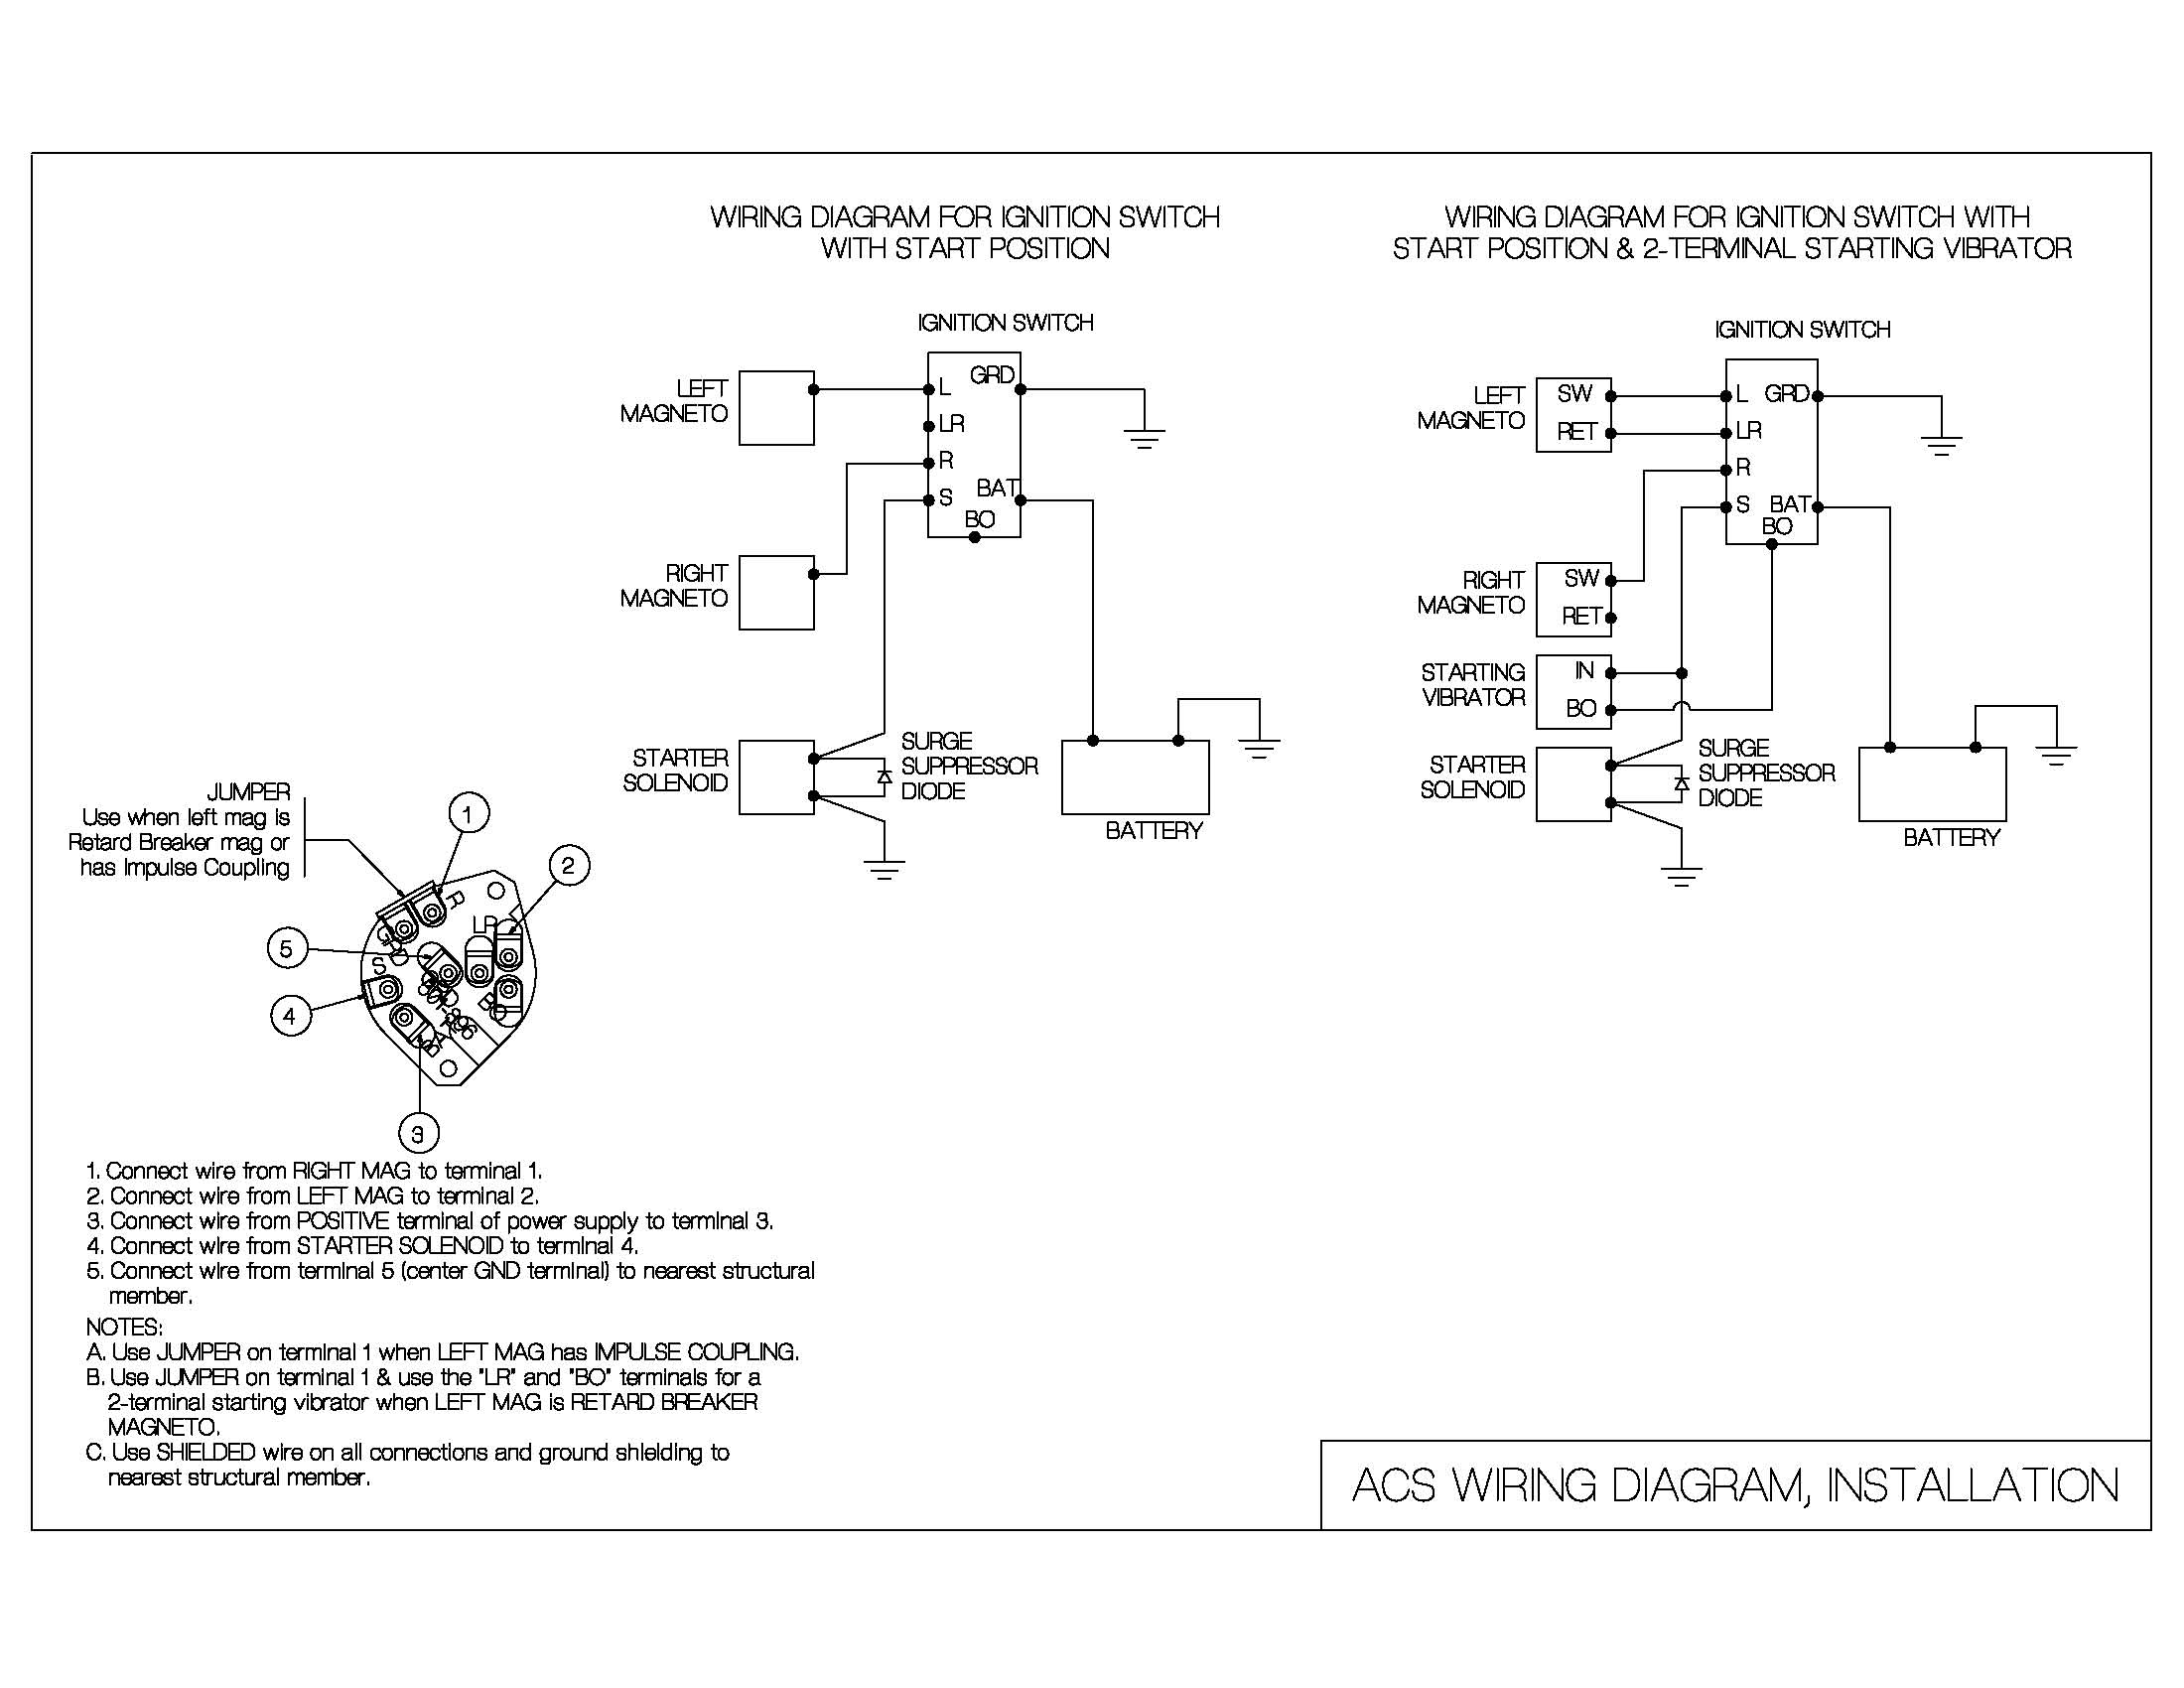 Wiring Diagram ignition switch wiring diagram acs products company ignition switch wiring diagram at bakdesigns.co